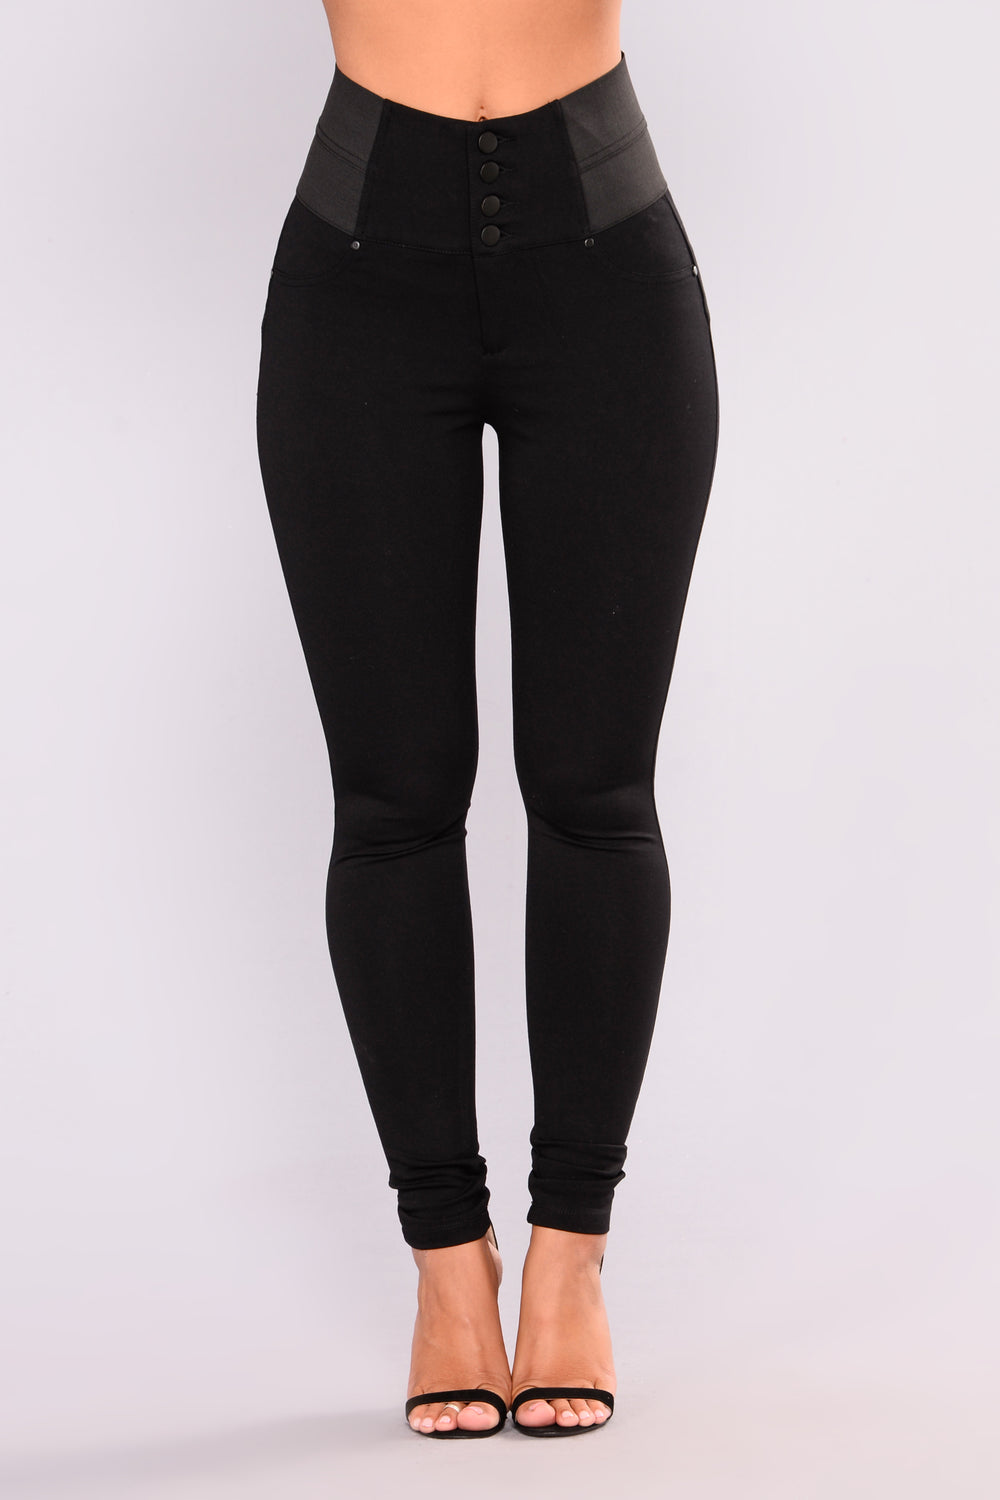 Chantal Ponte Leggings - Black